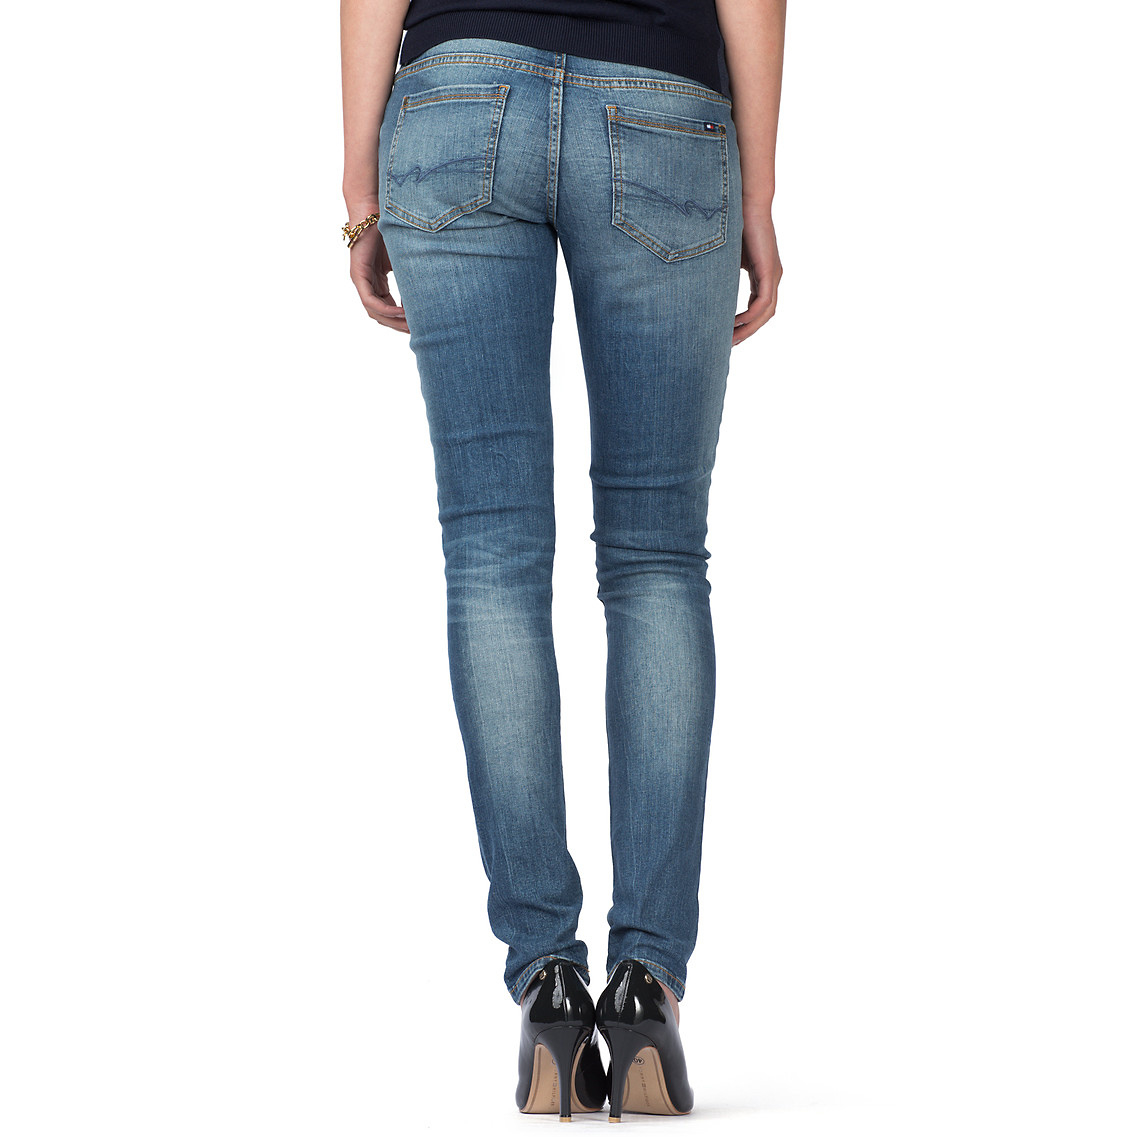 Royal Blue Jeans For Women